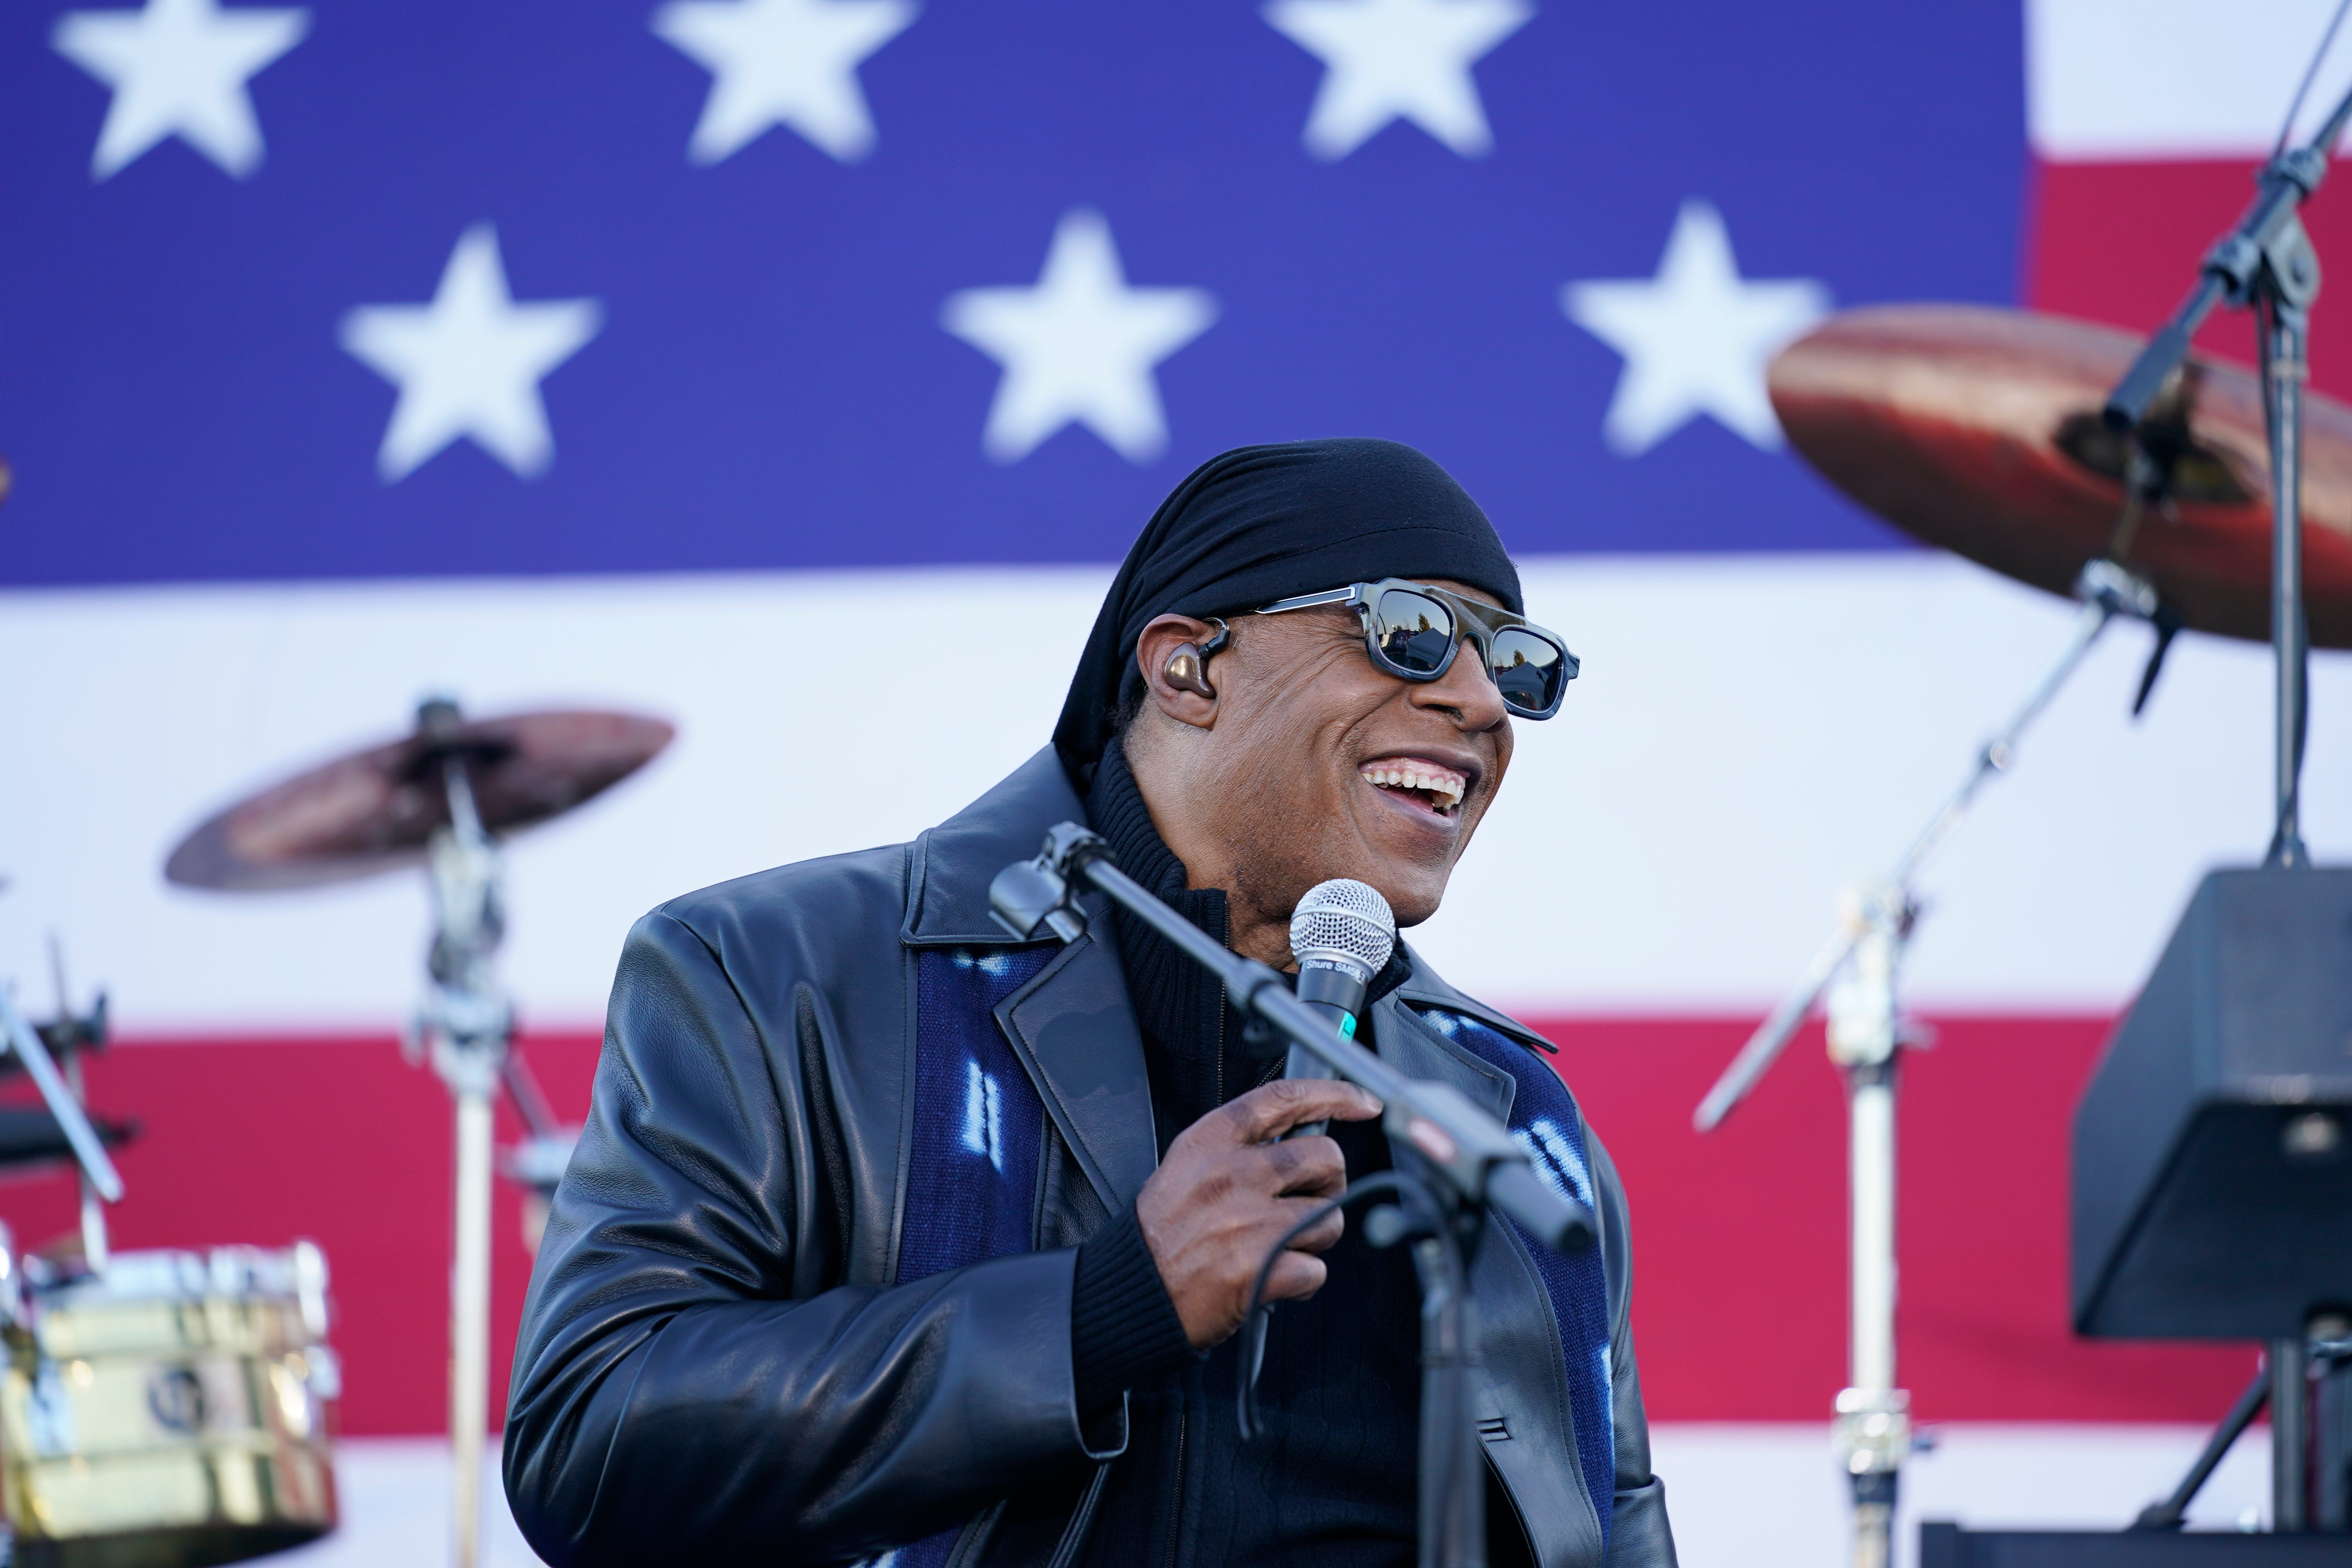 Why Stevie Wonder s longtime aspirations to move to Ghana are suddenly making headlines